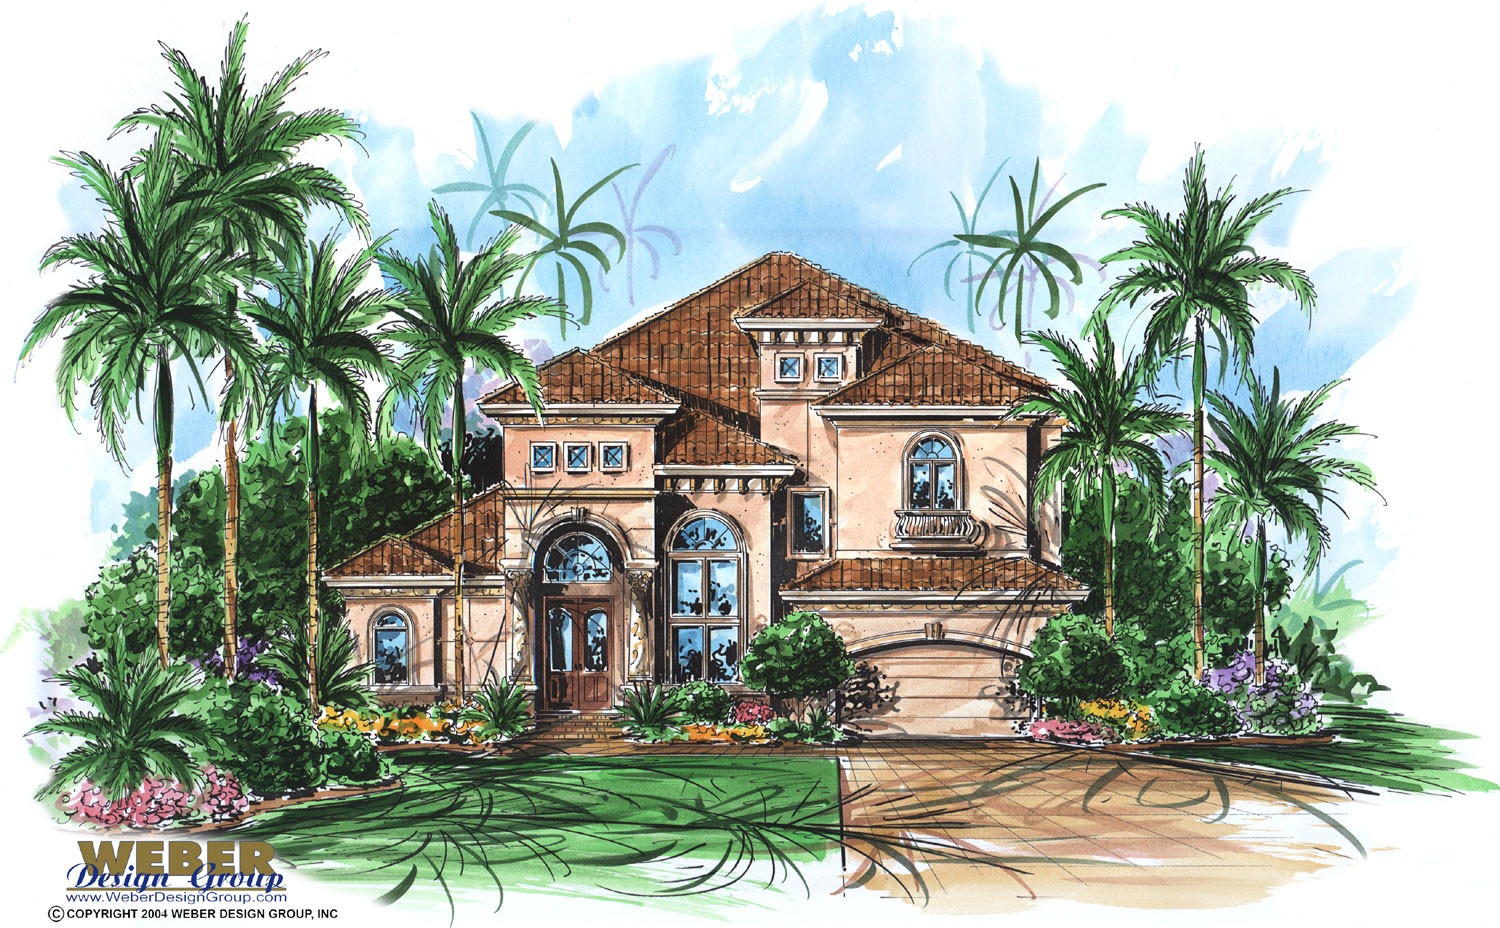 House design mediterranean style - Aurora House Plan